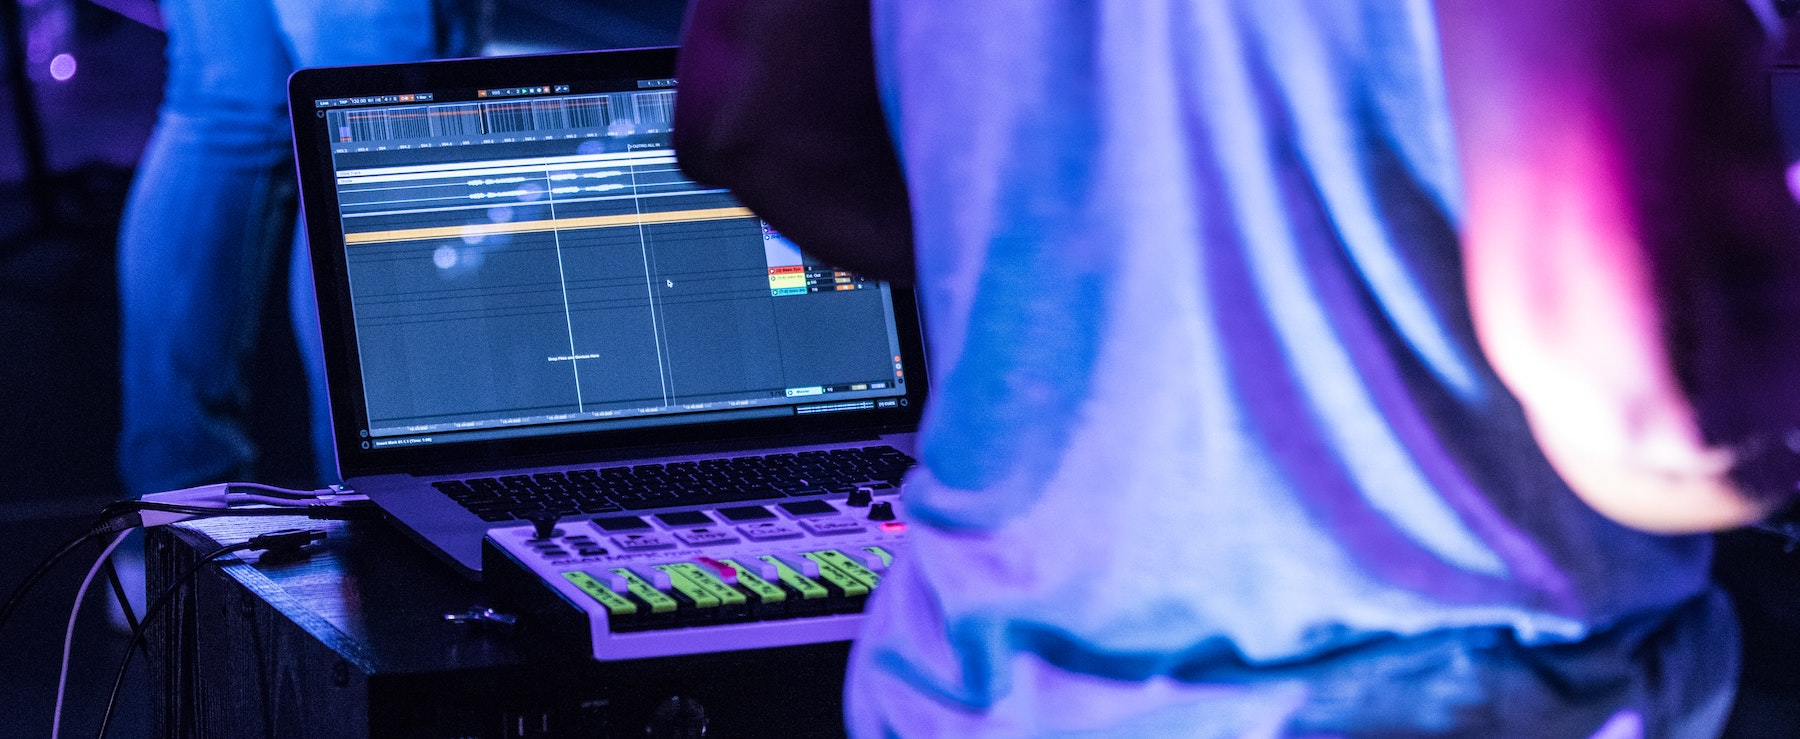 Laptops are Good For Music Production